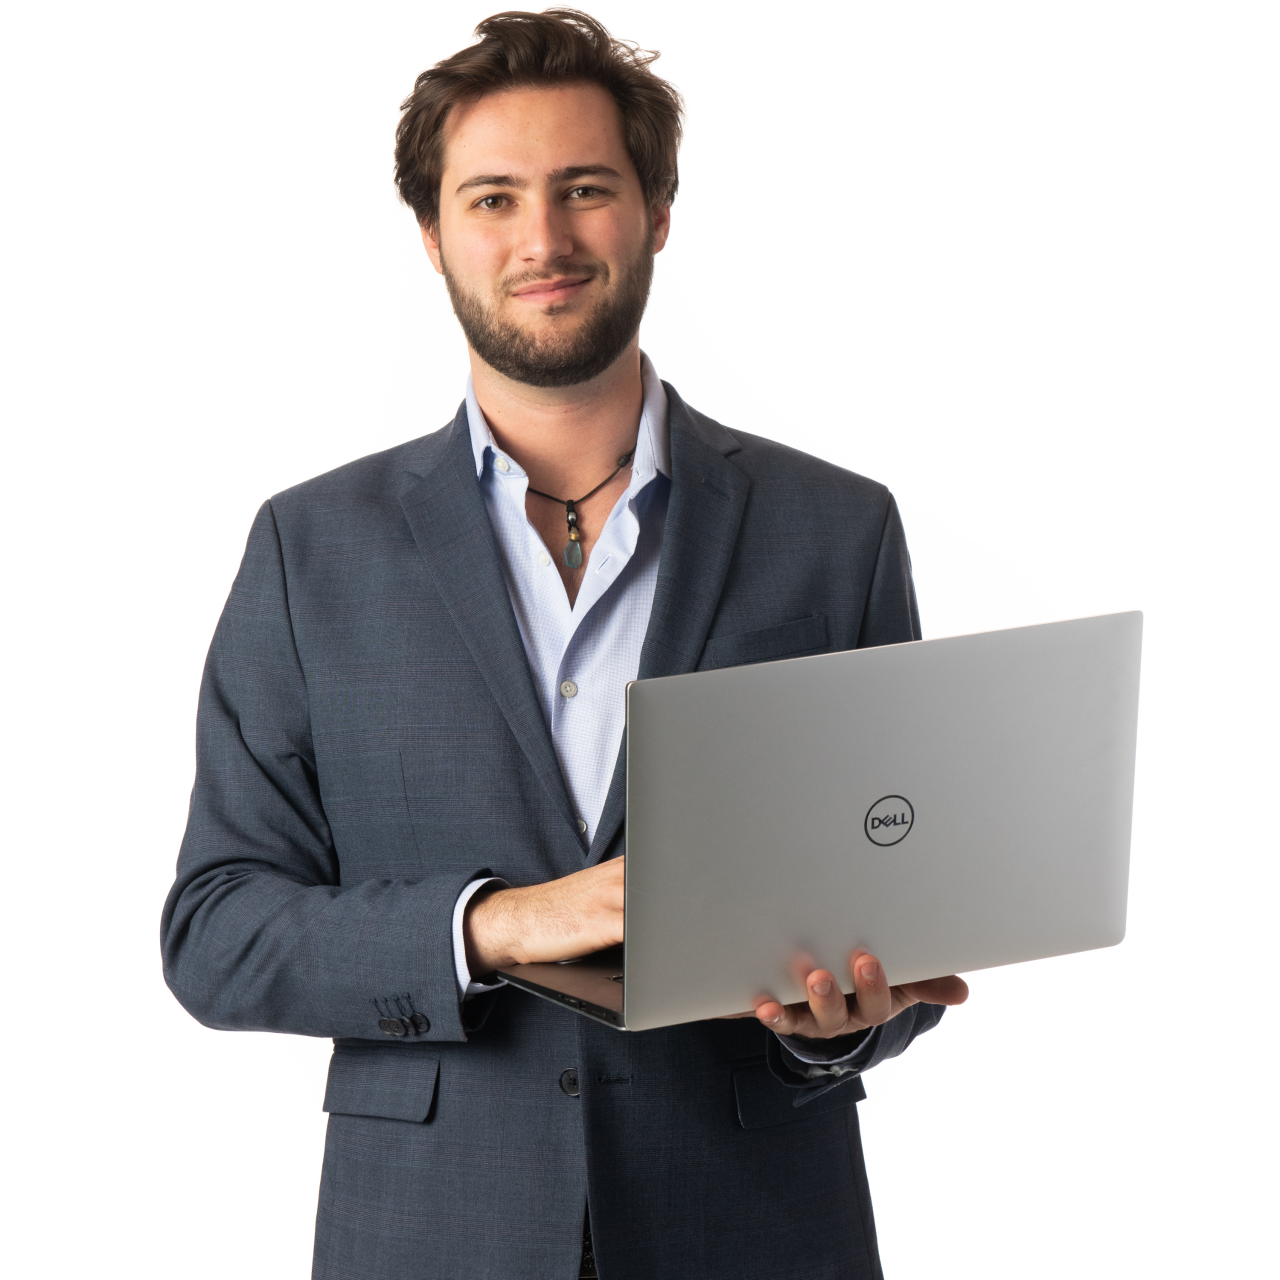 Headshot picture of a Game Programming student holding a laptop